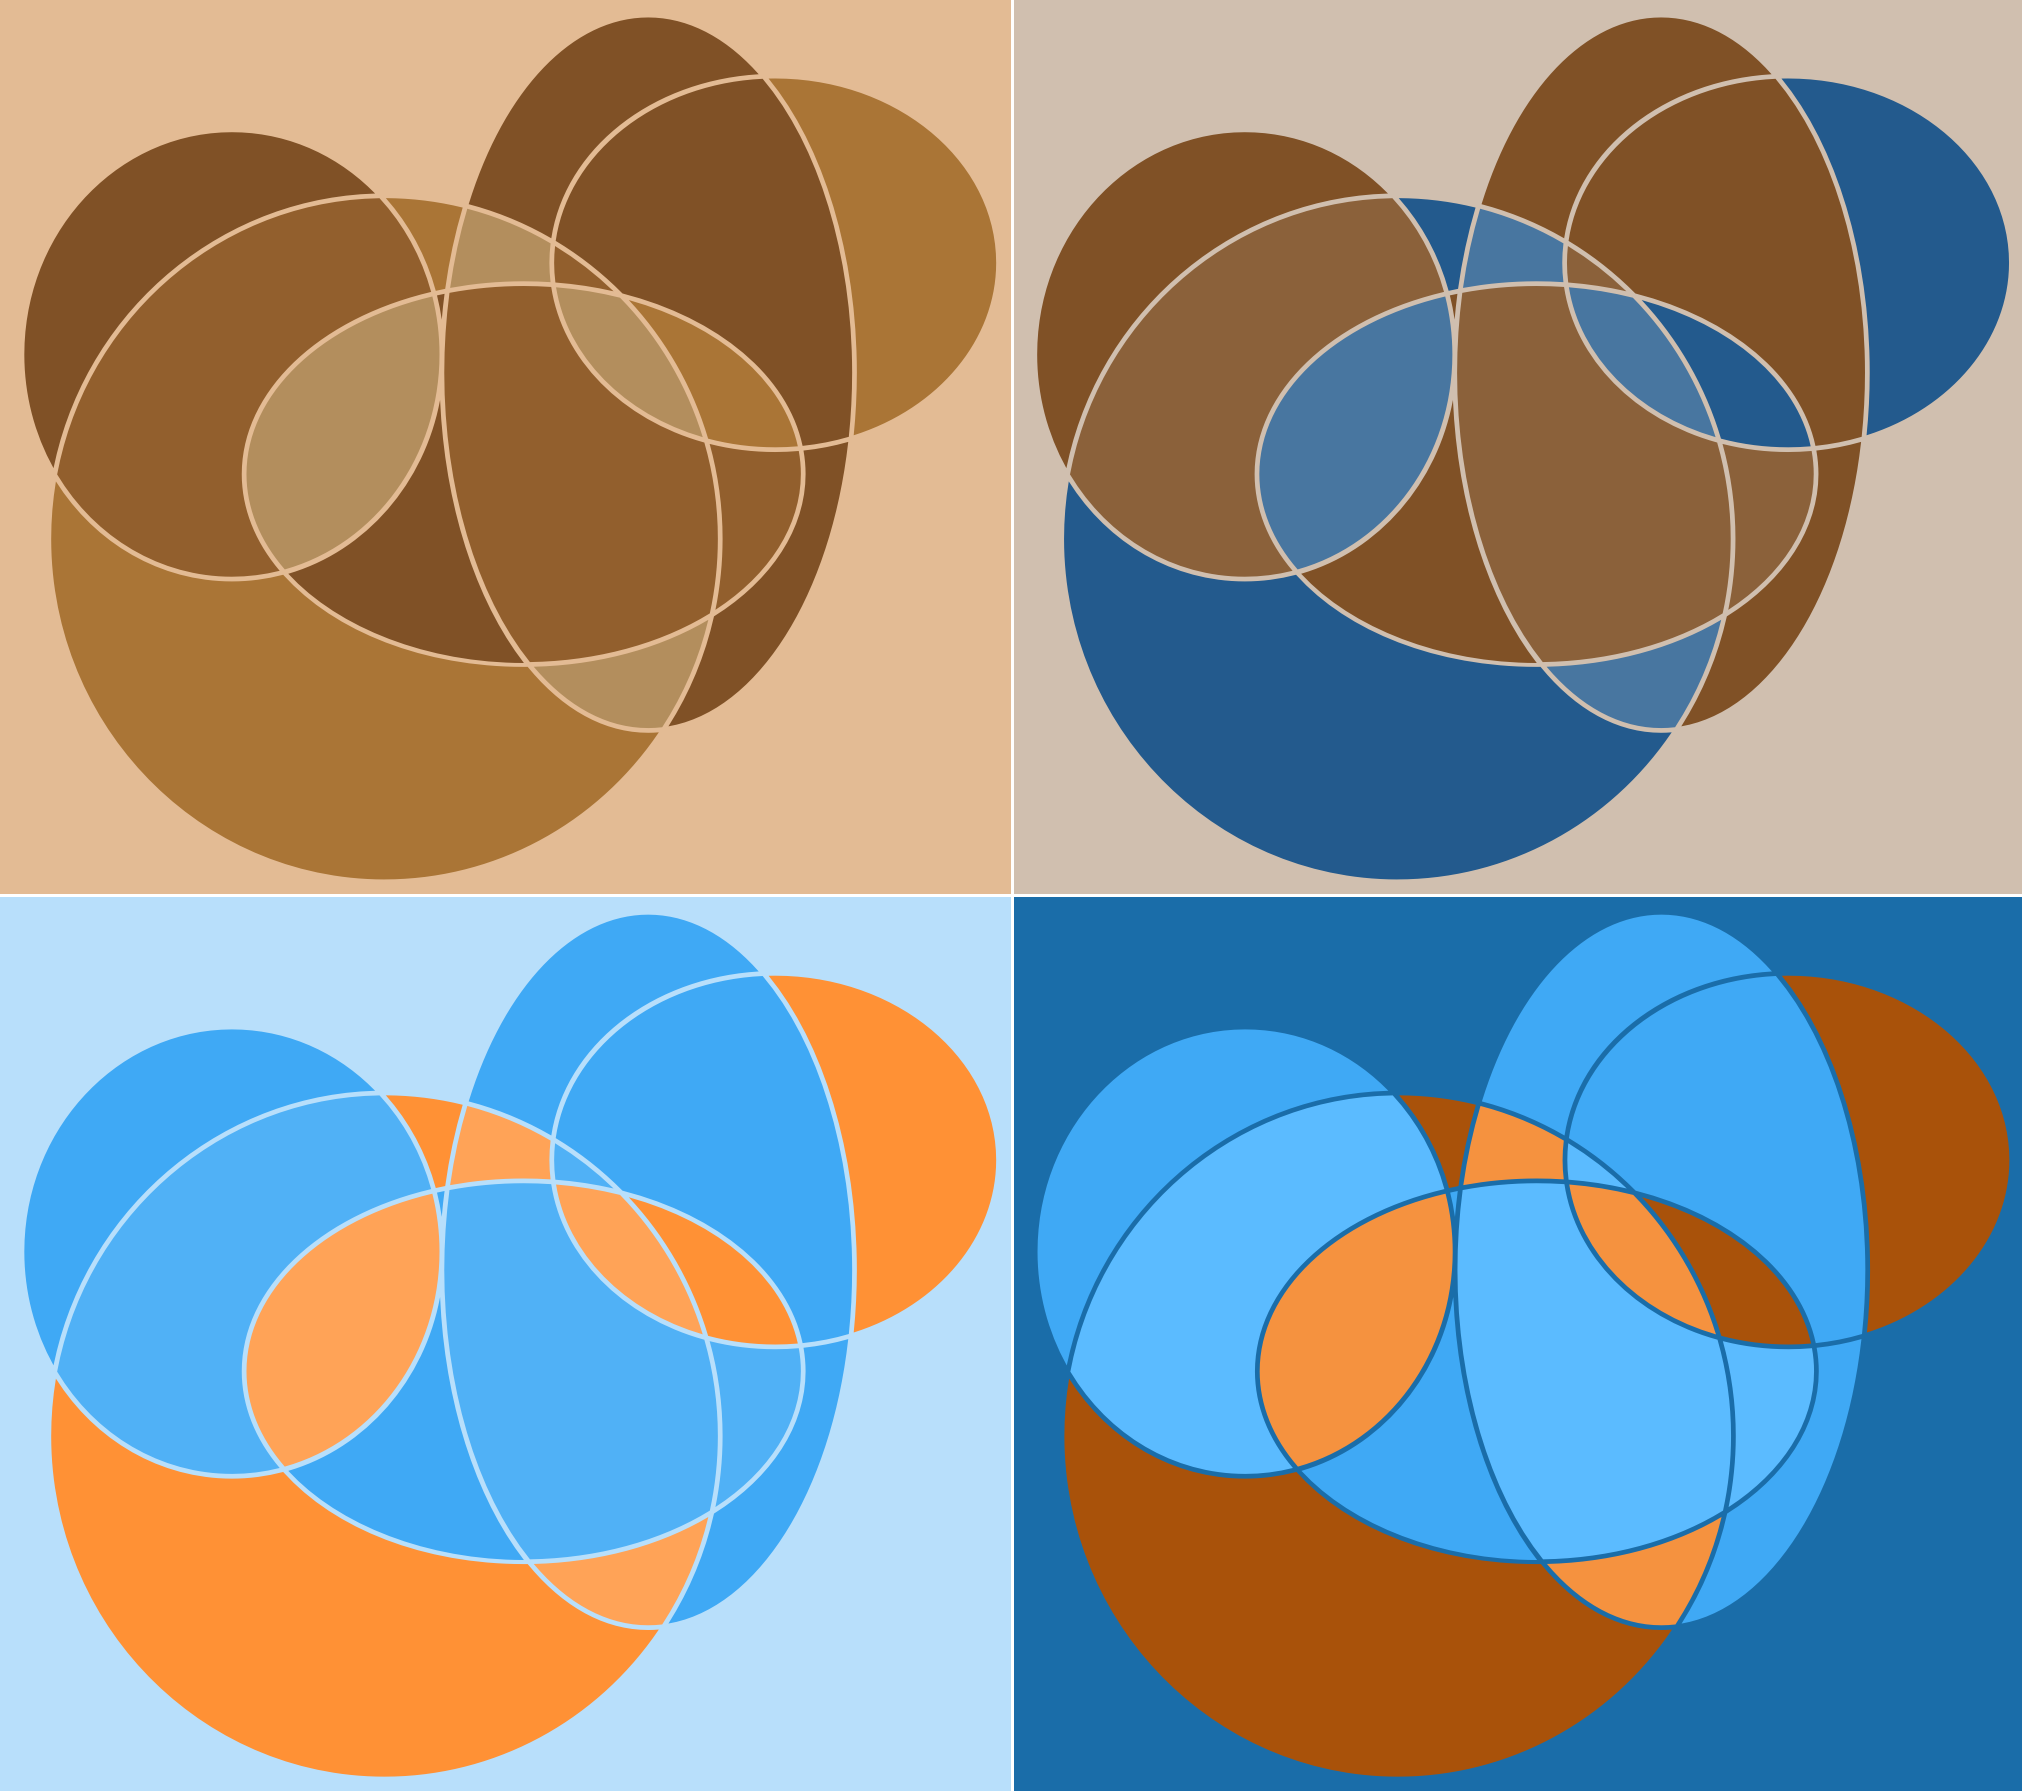 Abstract geometric circle compositions by intergrapher